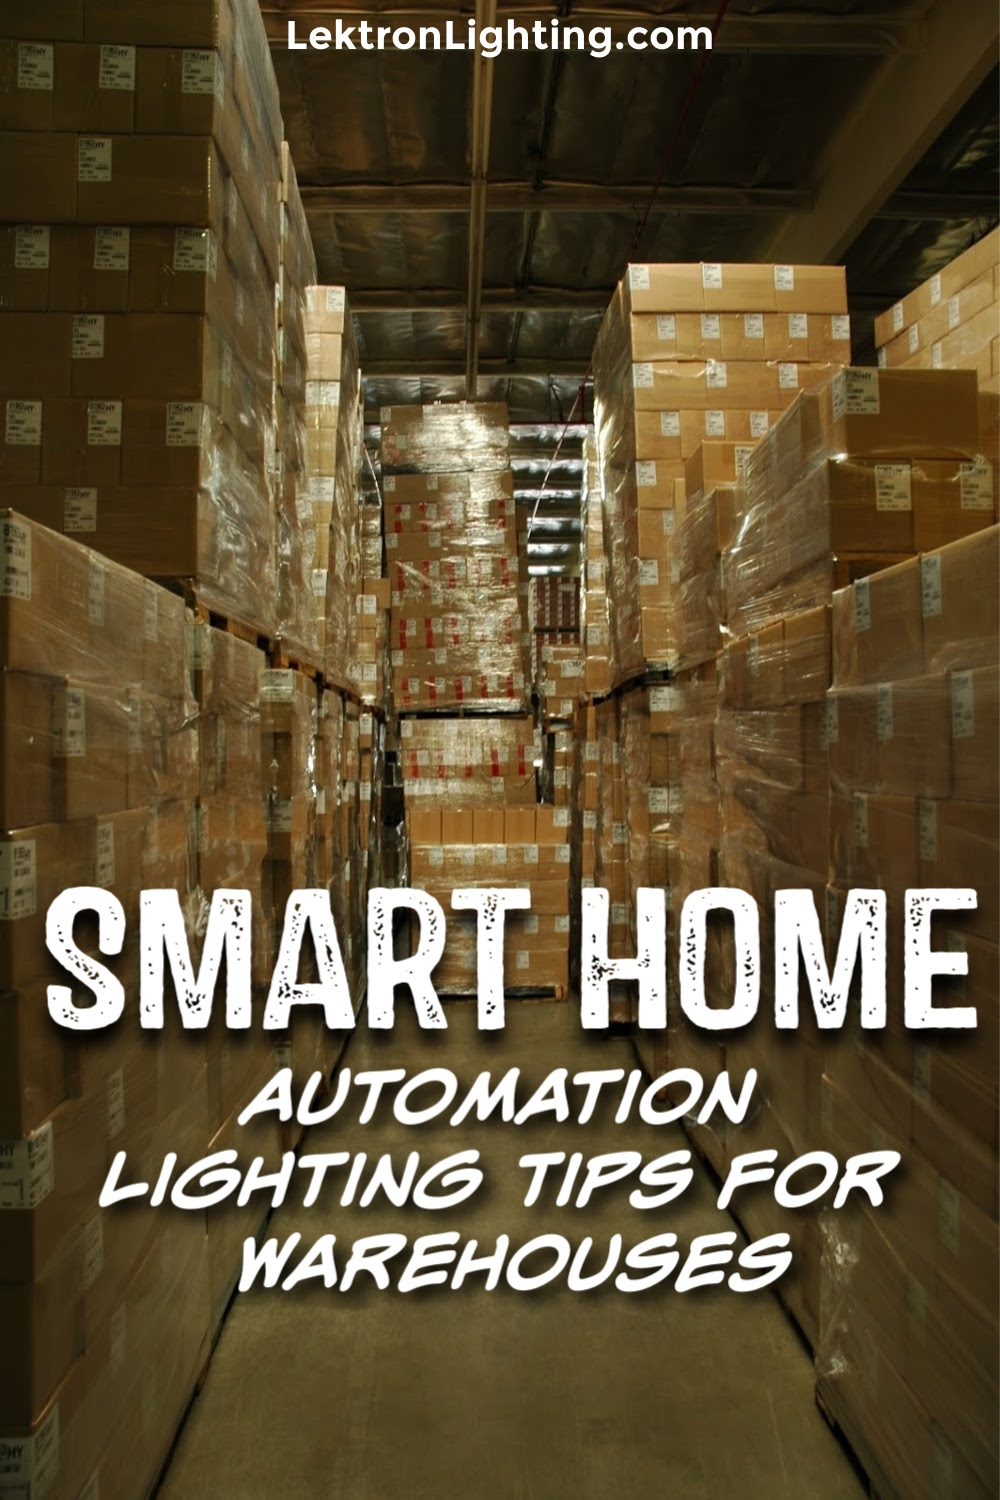 Smart home automation lighting tips can help your business save money by utilizing smart home products and the features they come with.